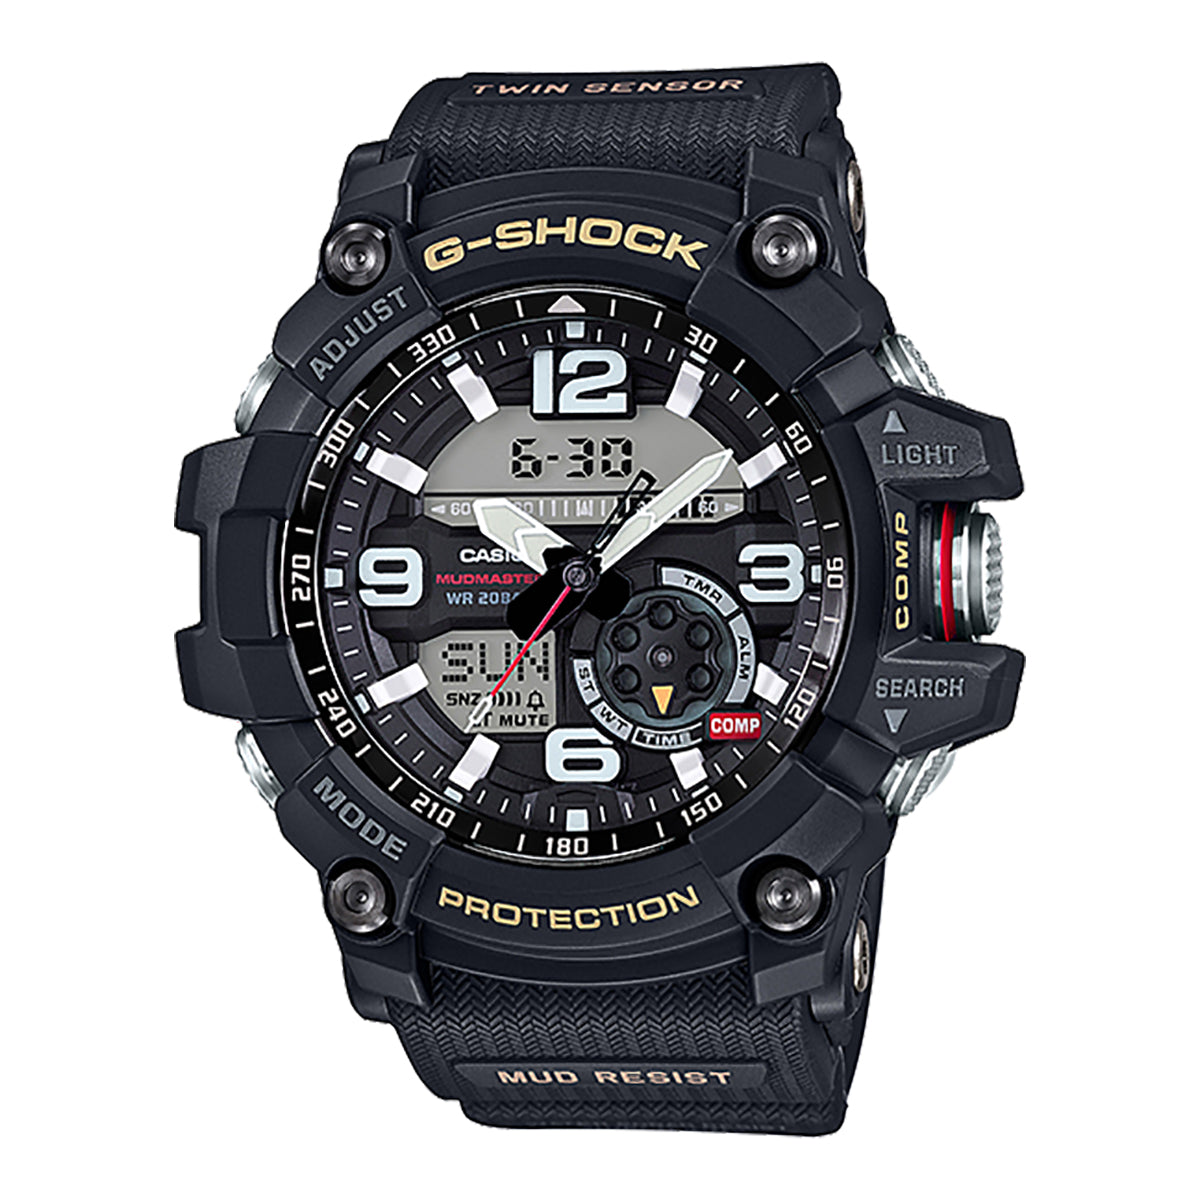 G-Shock: GG-1000-1A Mudmaster Watch - Black